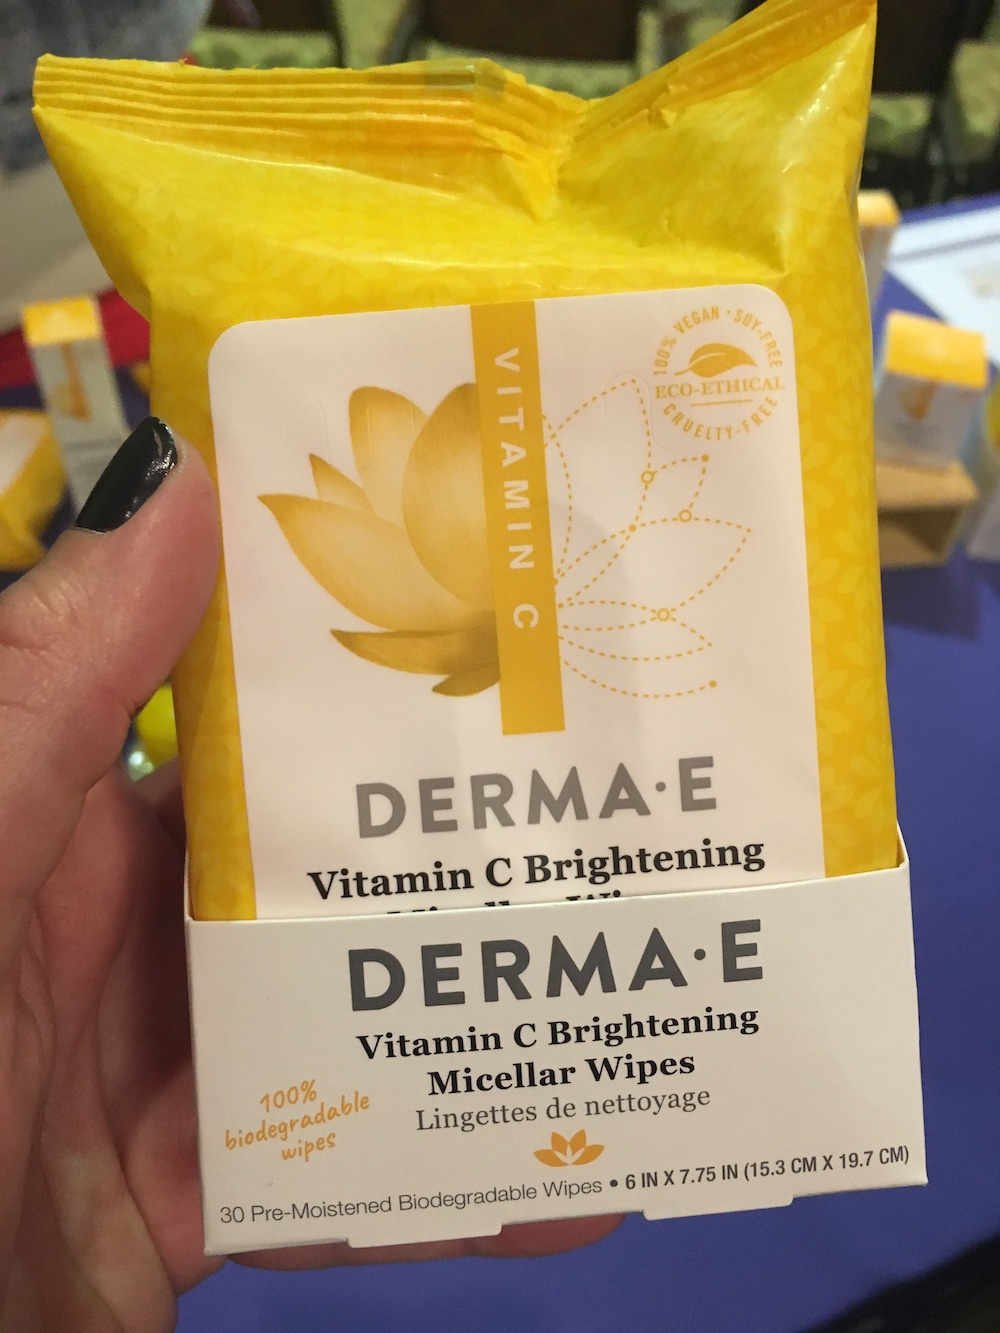 DermaE Vitamin C Brightening Micellar Wipes